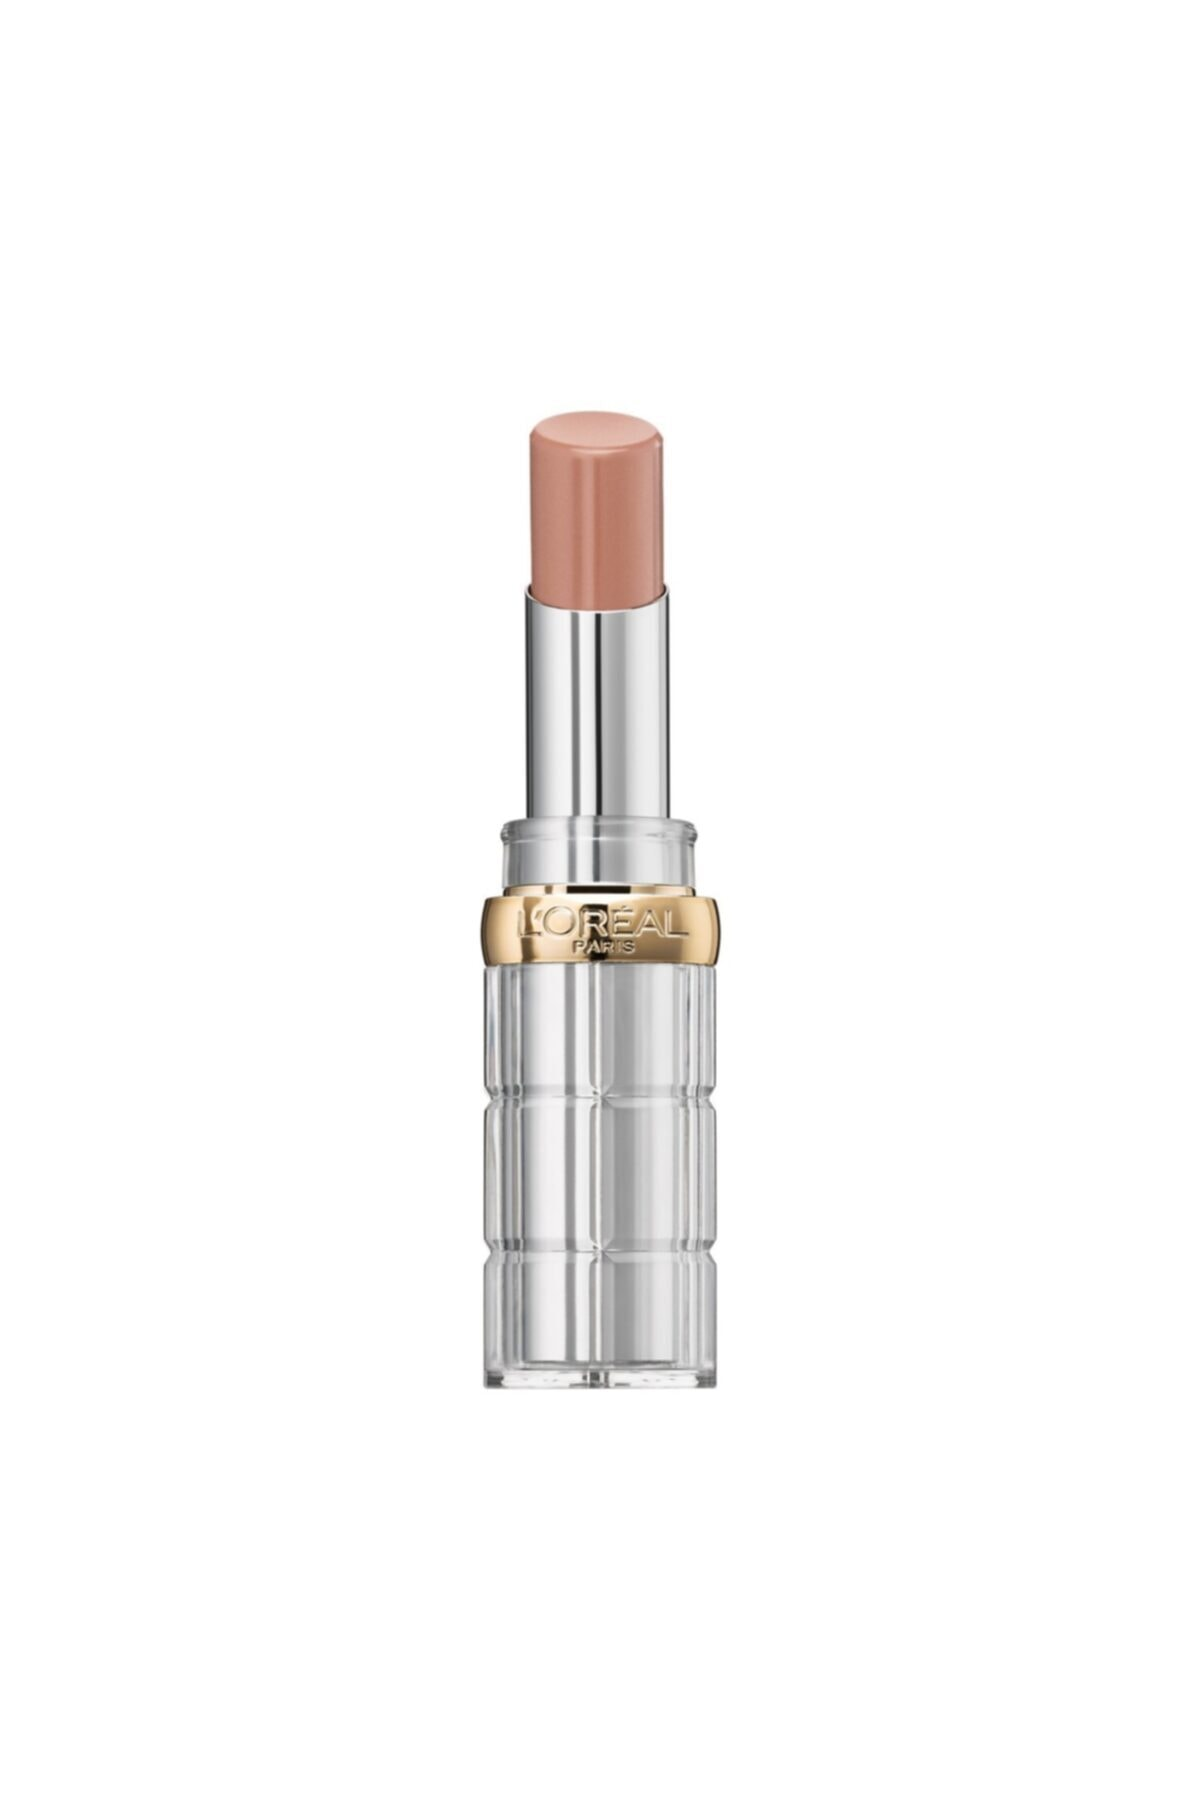 Color Riche Shine Naked Tans Ruj 658 Topless - Nude